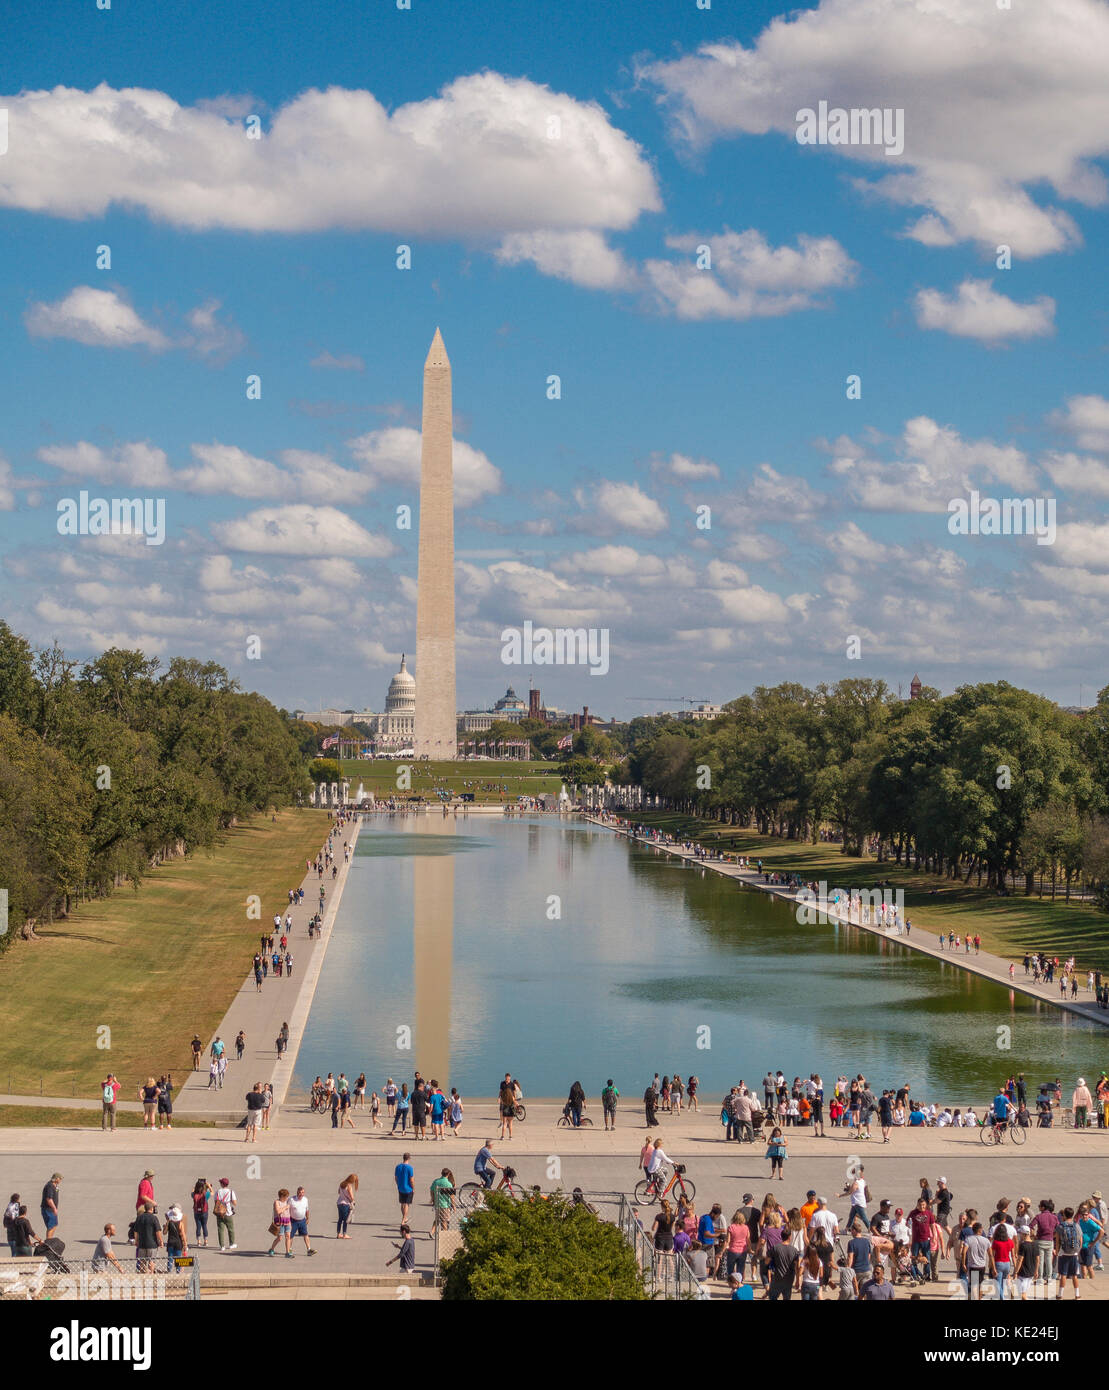 WASHINGTON, DC, USA - National Mall, Lincoln Memorial Reflecting Pool and Washington Monument. - Stock Image